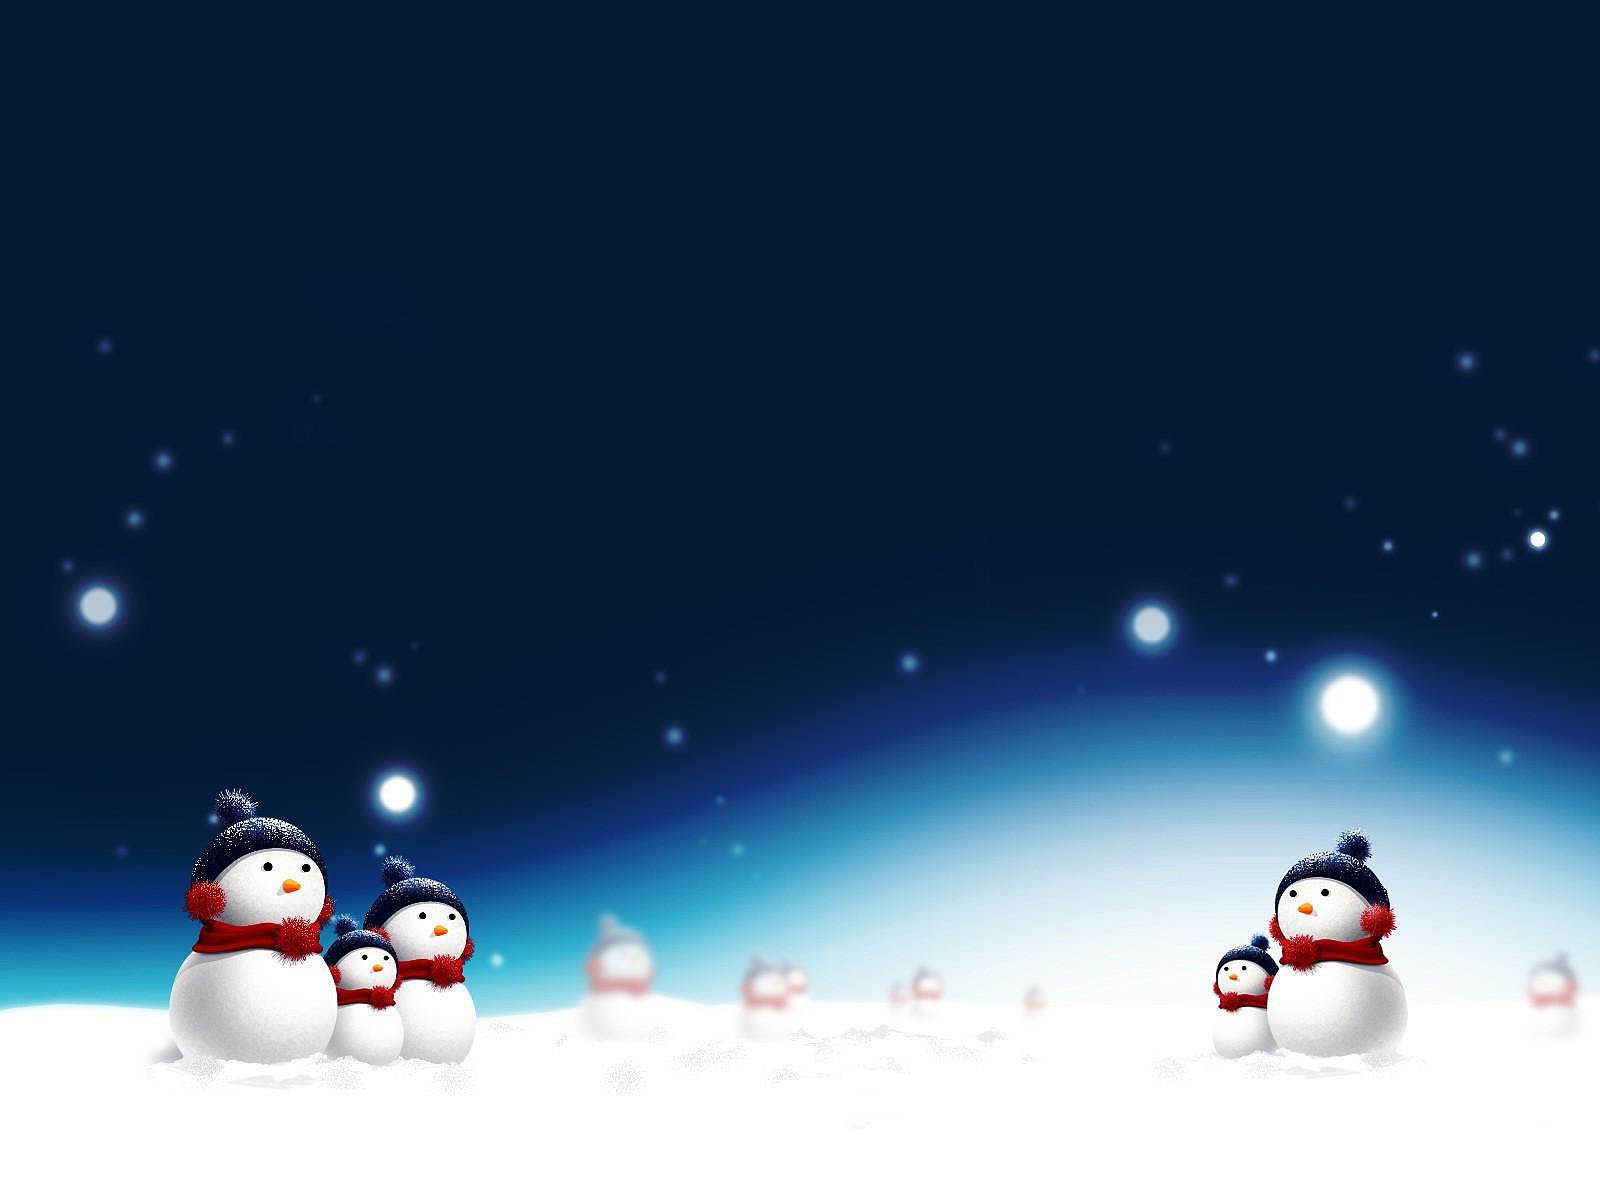 Wallpapers snowman desktop wallpapers and backgrounds for Screensaver natale 3d